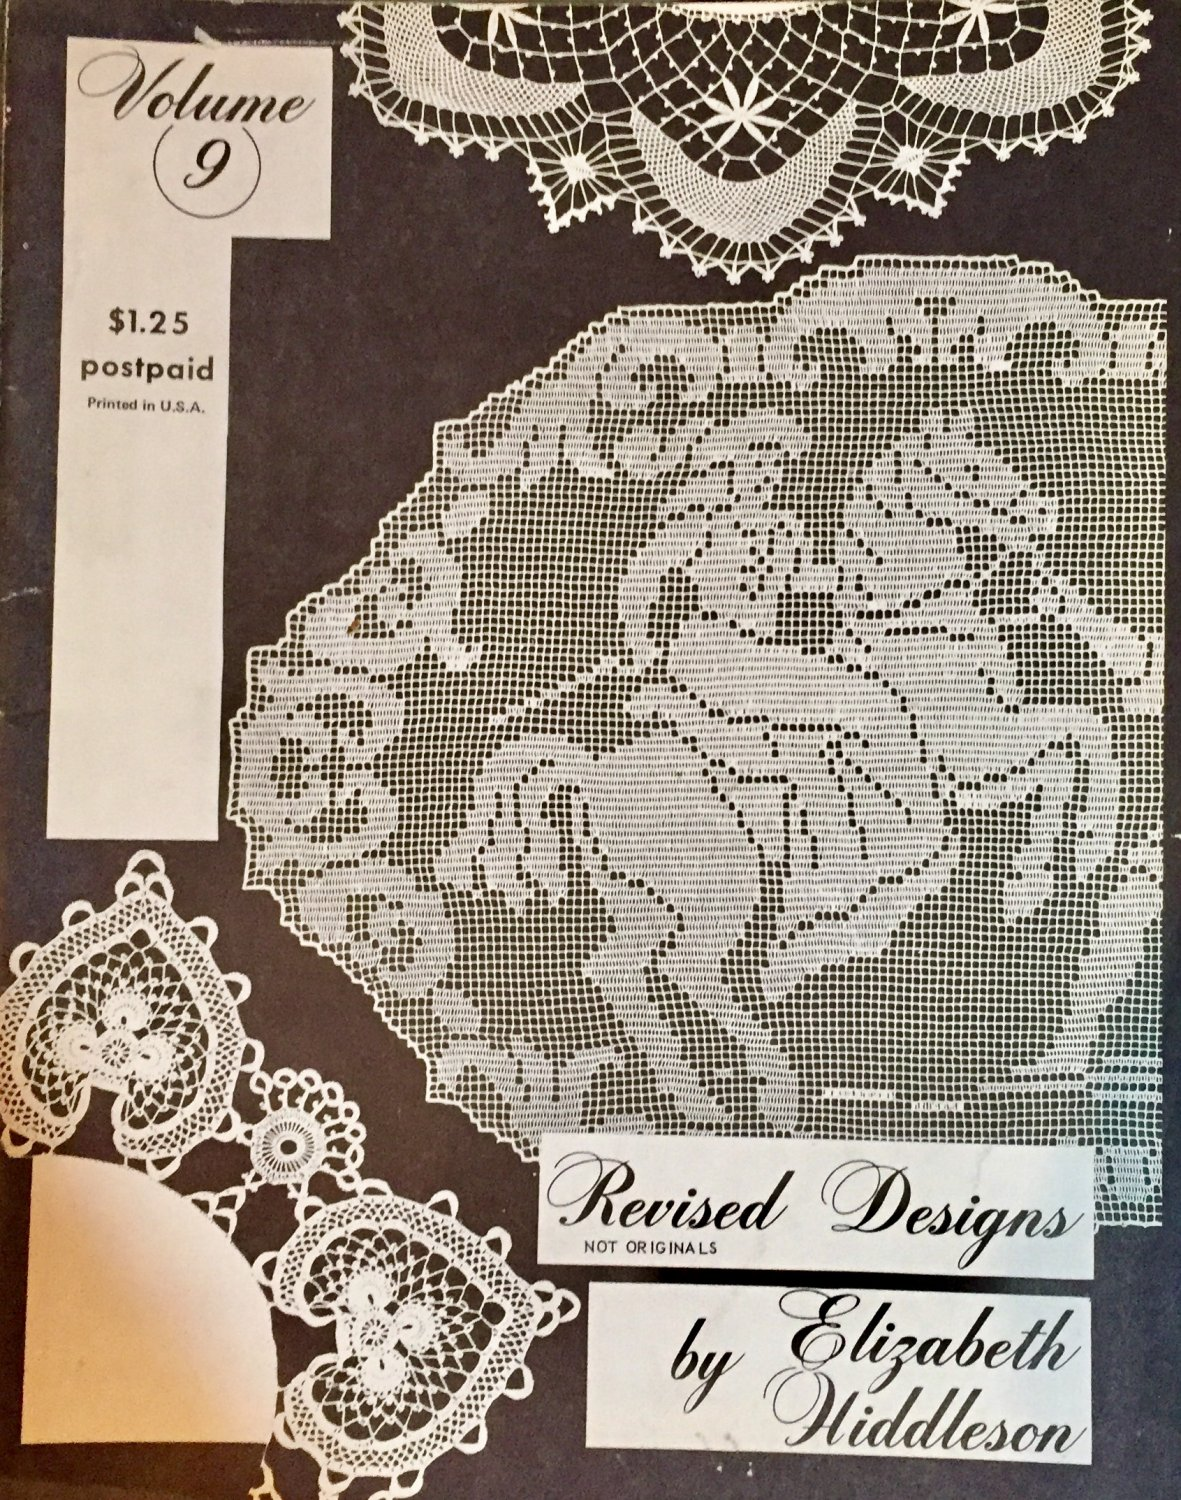 Elizabeth Hiddleson Crochet Patterns Vol.. 9 Revised designs